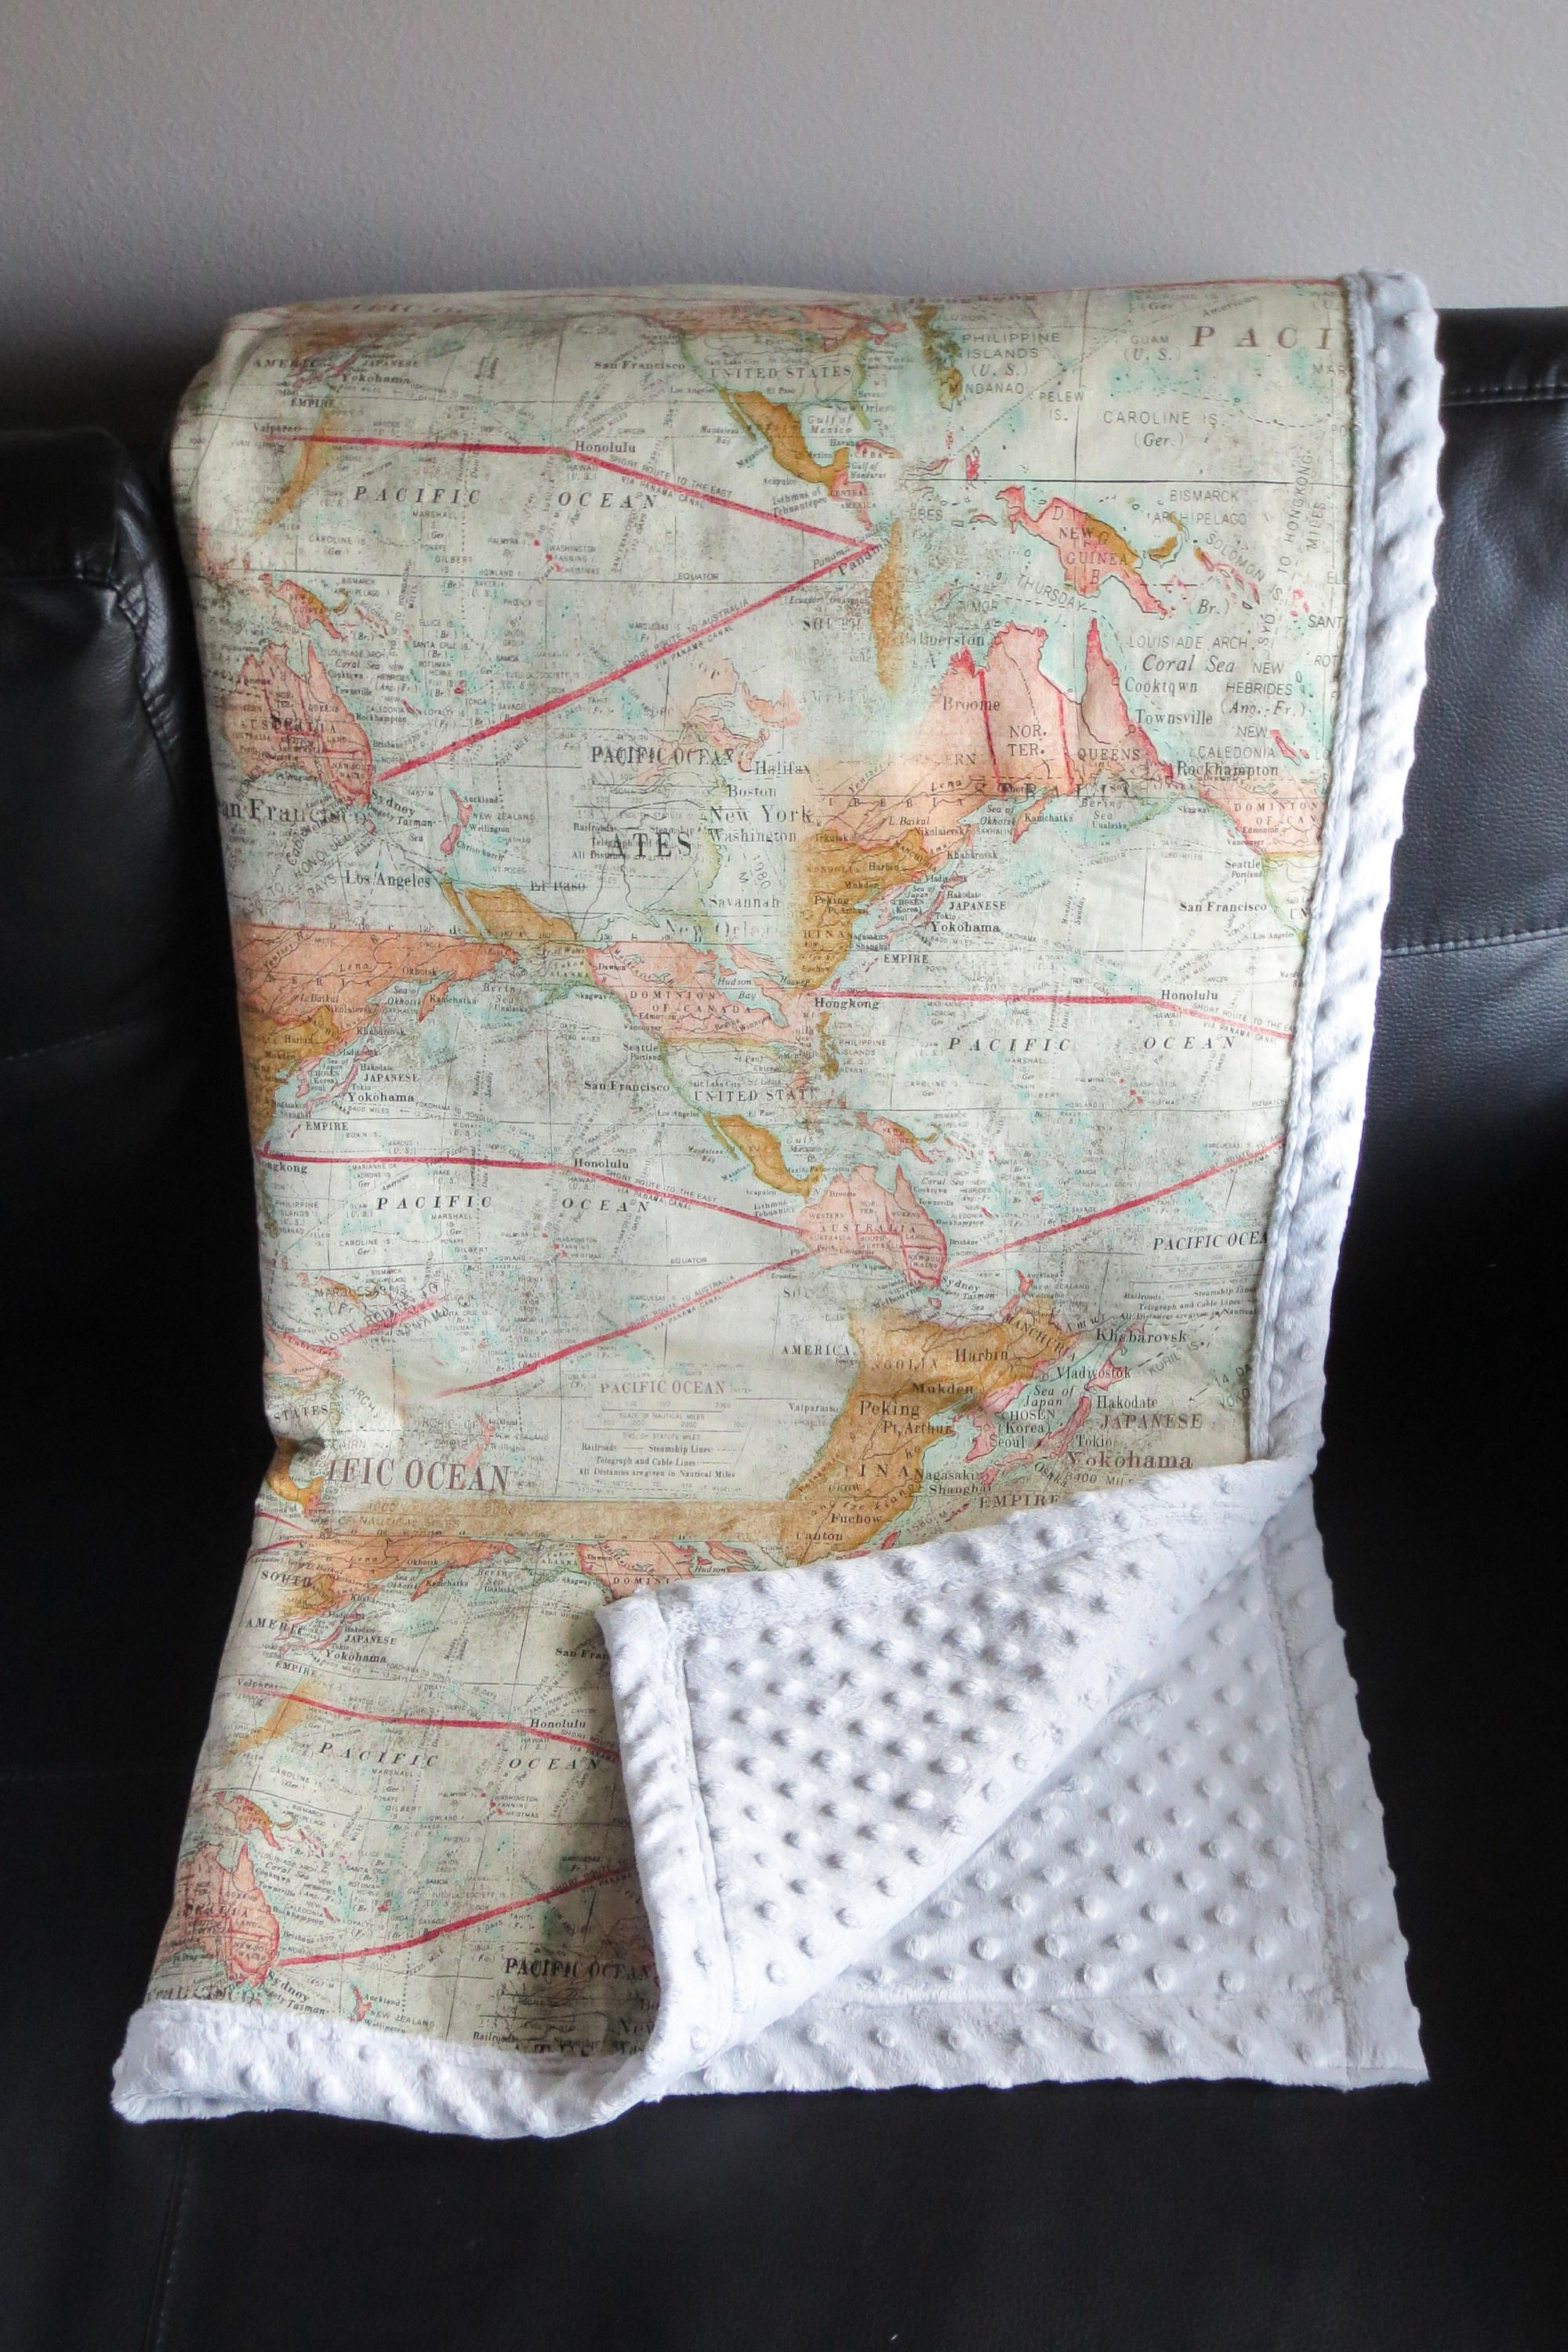 Map minky baby blanket gender neutral baby world map blanket map minky baby blanket gender neutral baby world map blanket travel theme blanket gumiabroncs Images